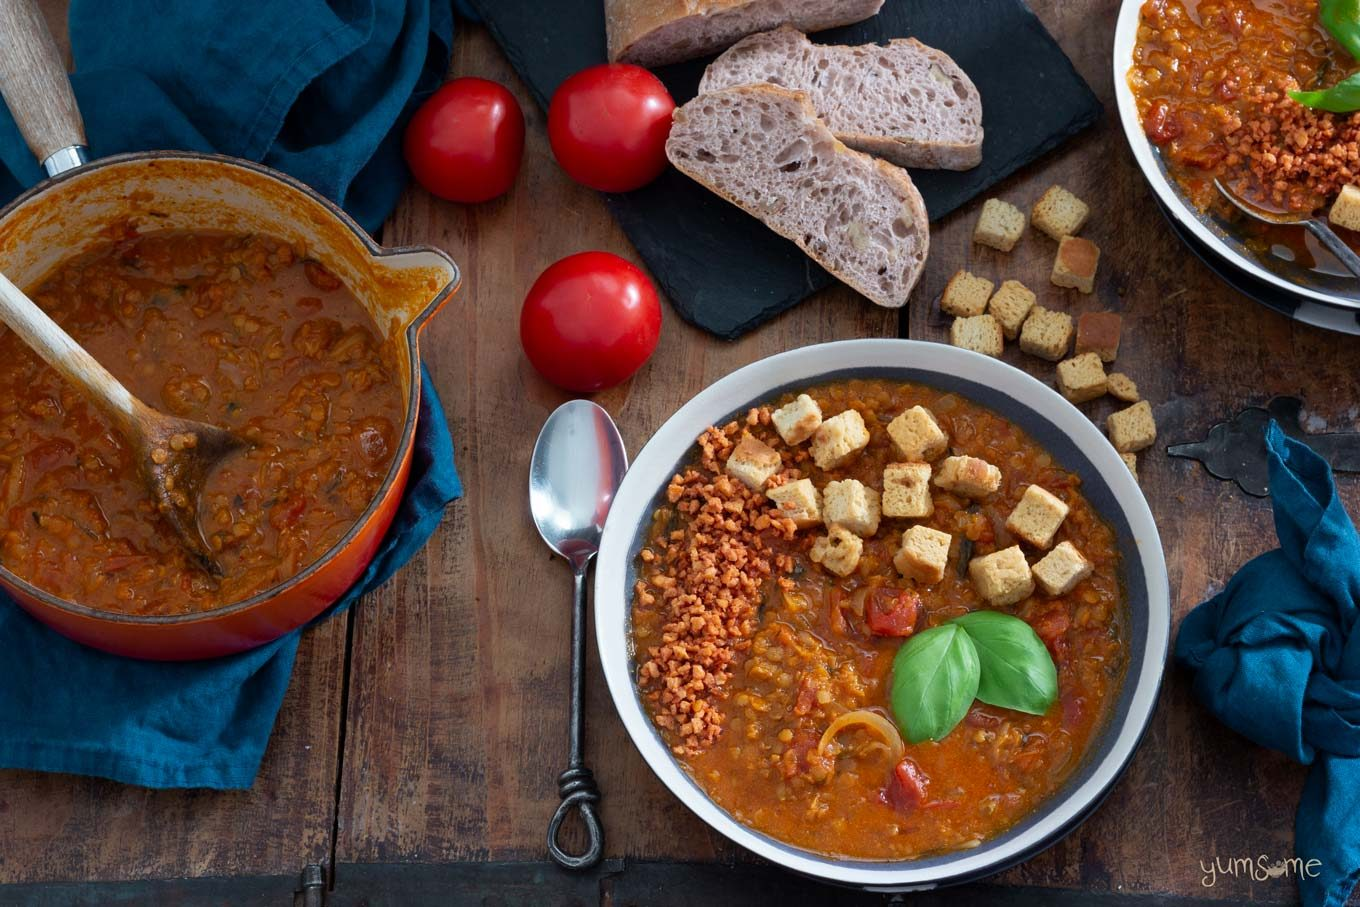 Several bowls and a pan of crockpot tomato lentil soup on a wooden table, with croutons, bread, and tomatoes.